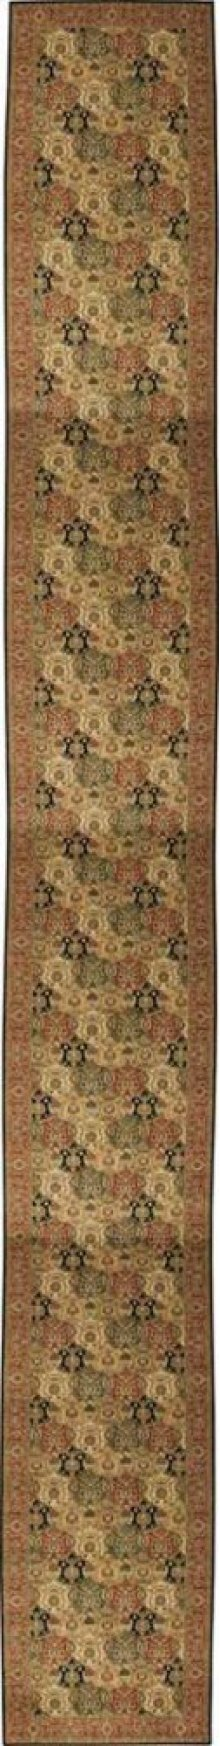 Hard To Find Sizes Grand Parterre Pt04 Multi Rectangle Rug 7' X 58'6''